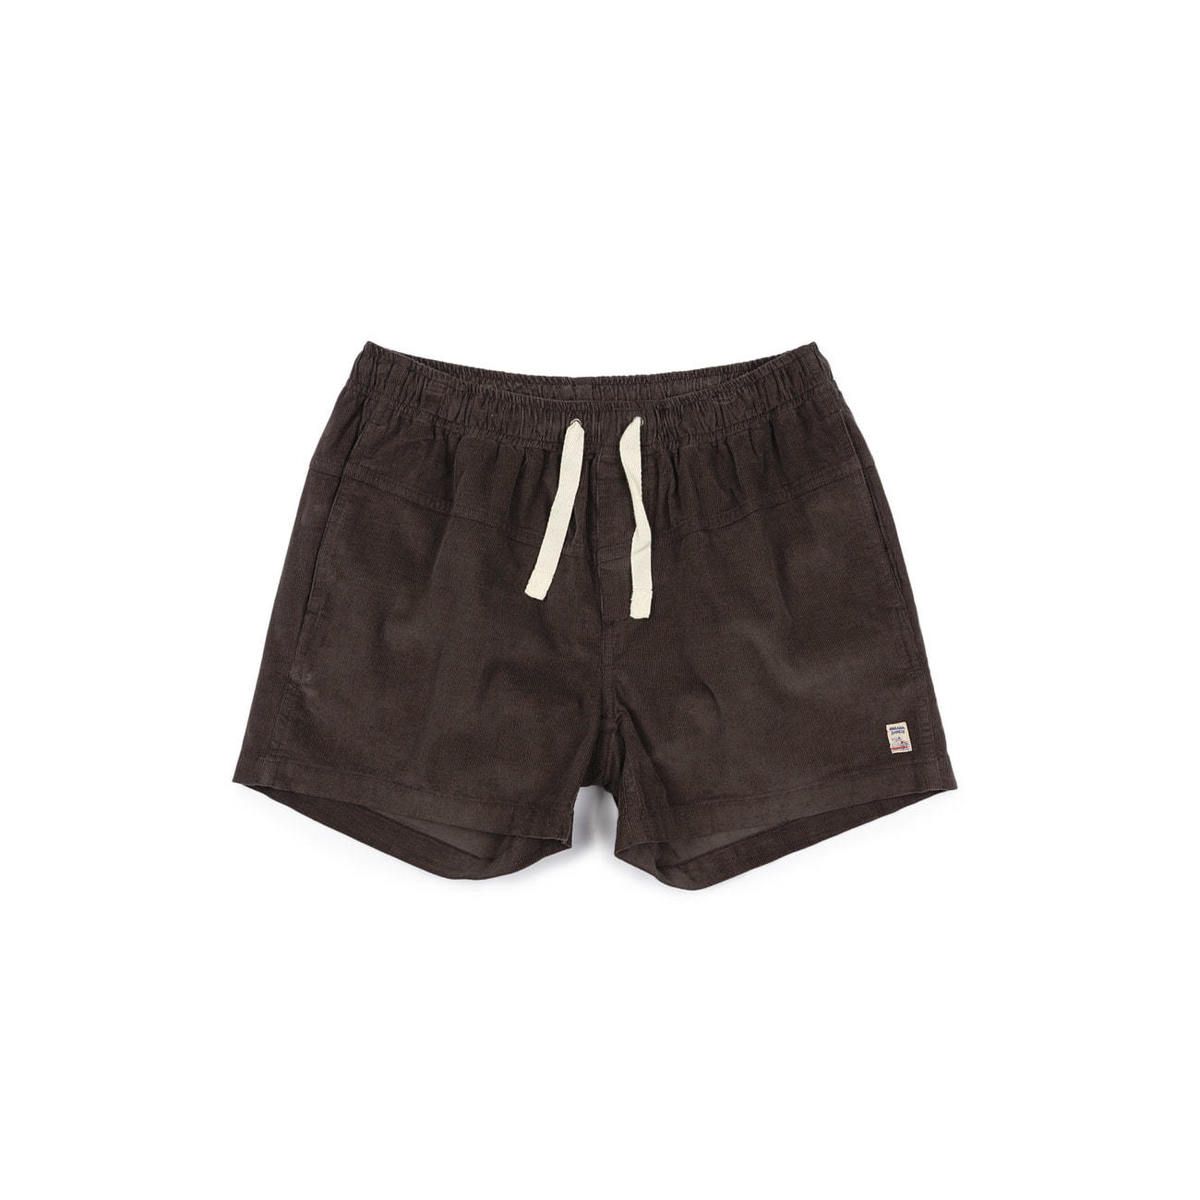 [M.Nii] CORDUROY DROWNER TRUNK 'BROWN'